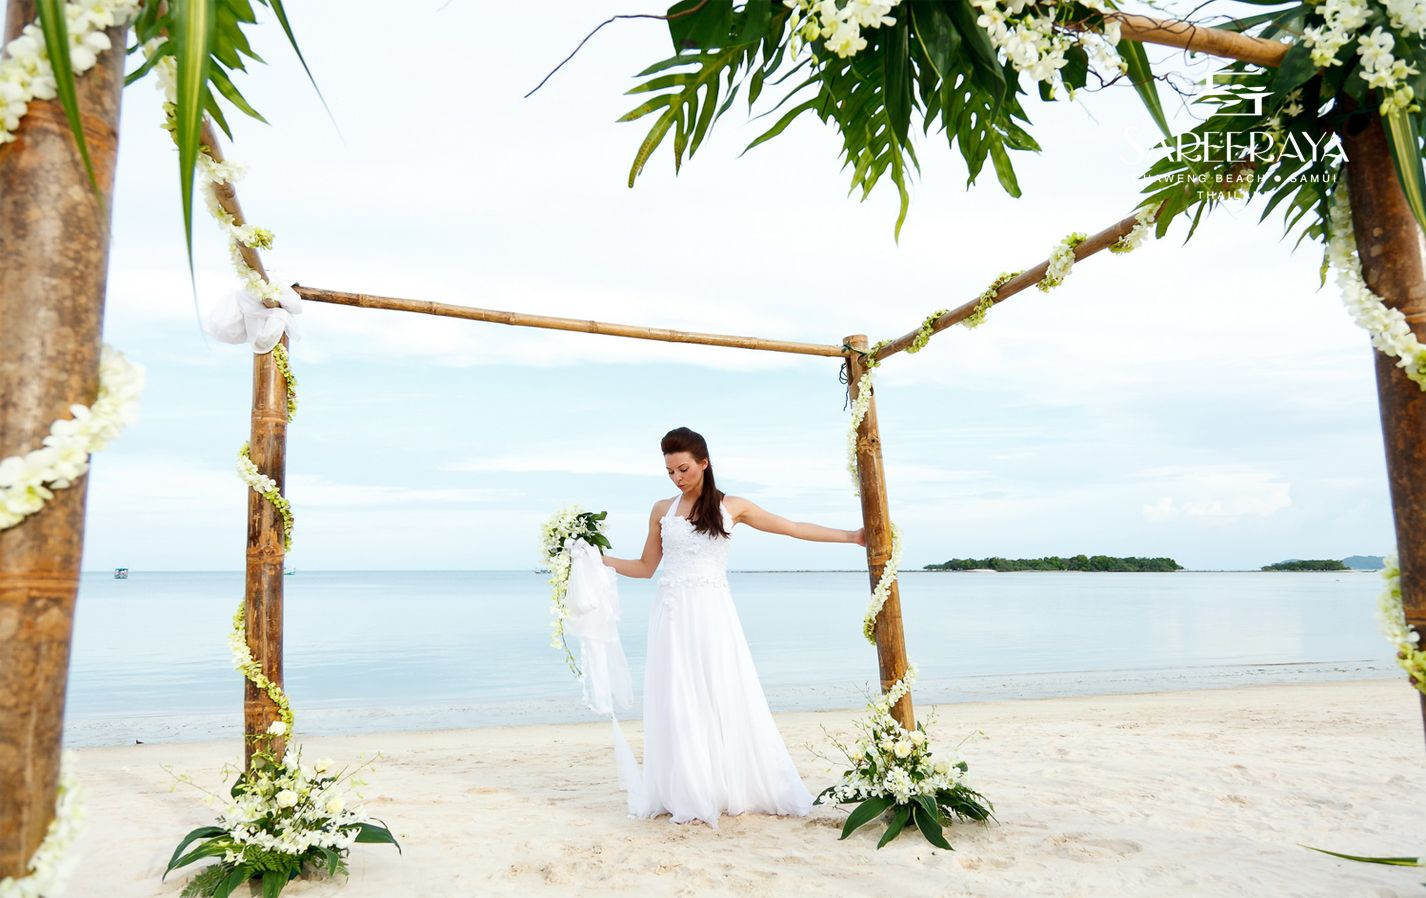 Stunning Beach Wedding Ceremony Ideas: Bamboo Canopy Speaks For Itself! A Stunning Addition To